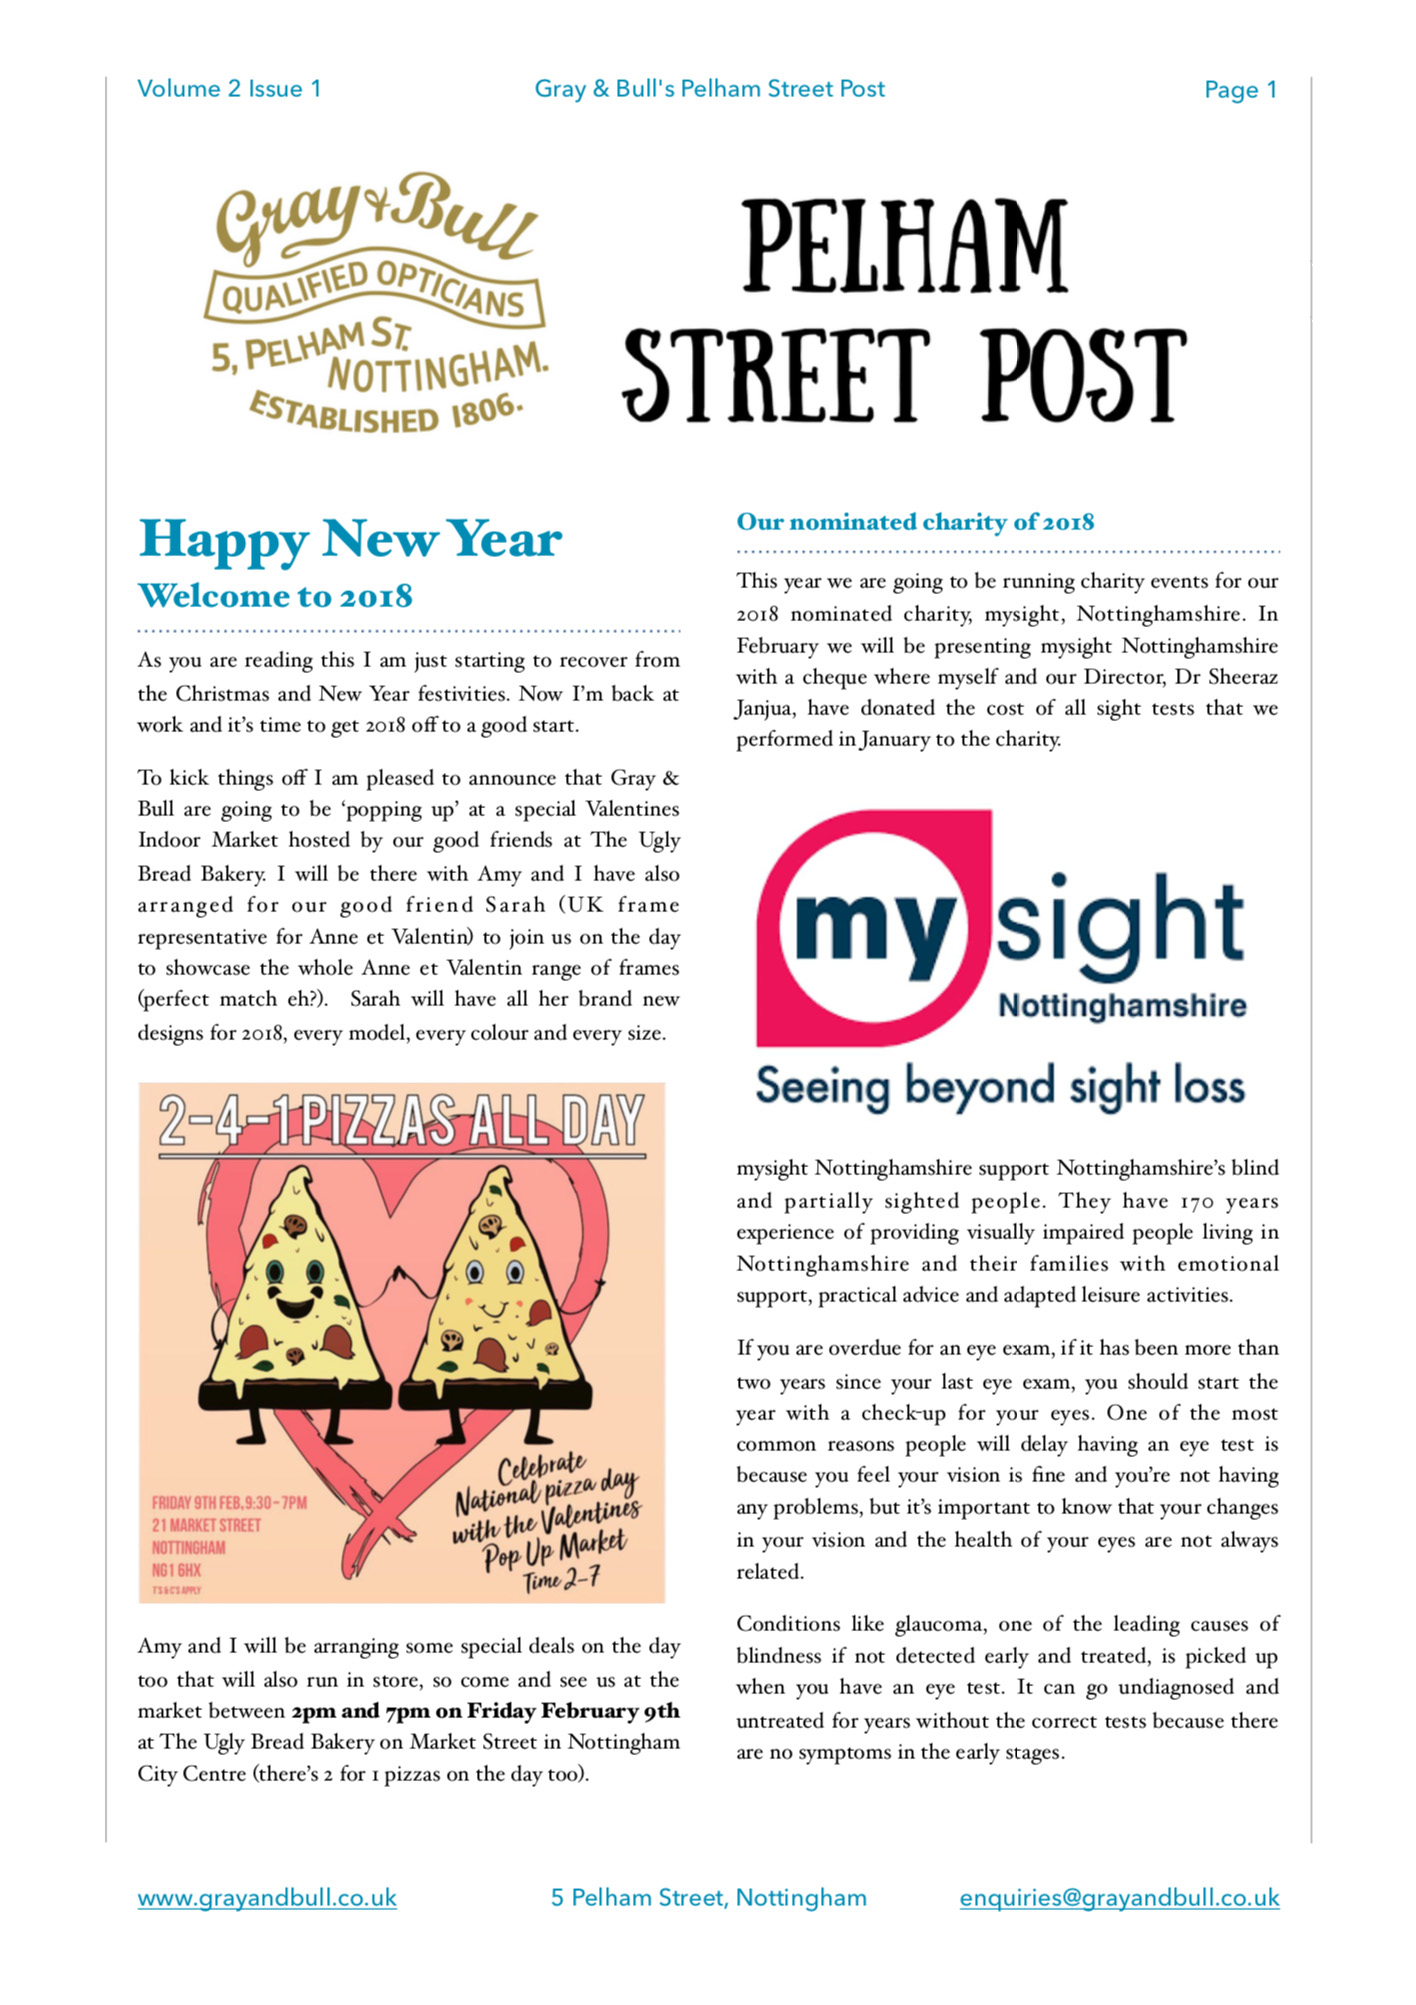 Happy New Year Valentine Pop-Up MySight Nottm Charity Pelham Street Post